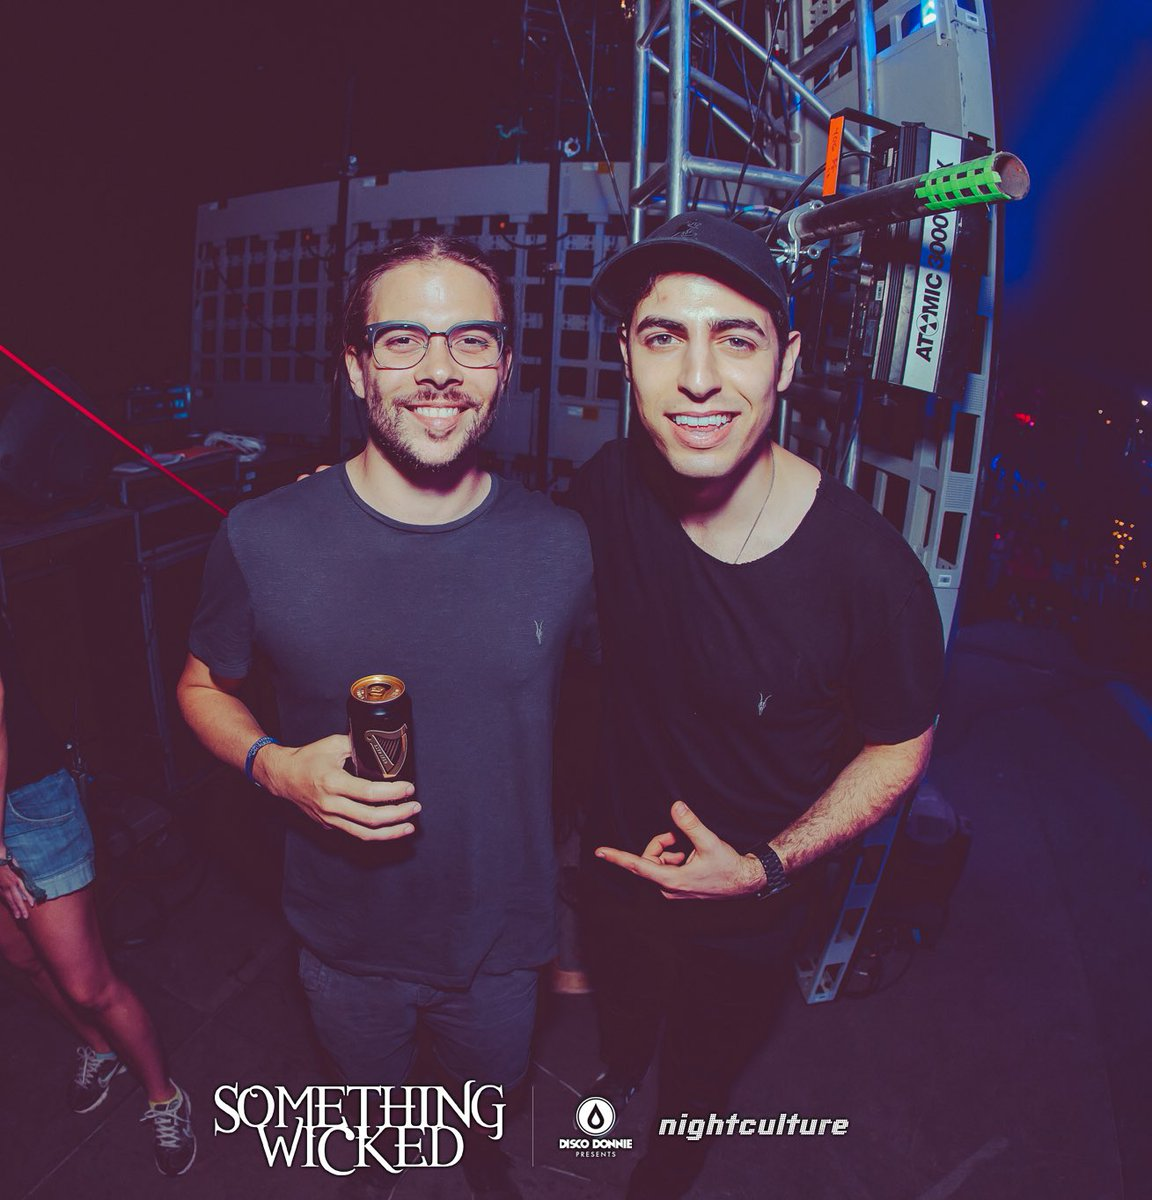 Who here is getting ready for that Seven Lions x Jason Ross collab?